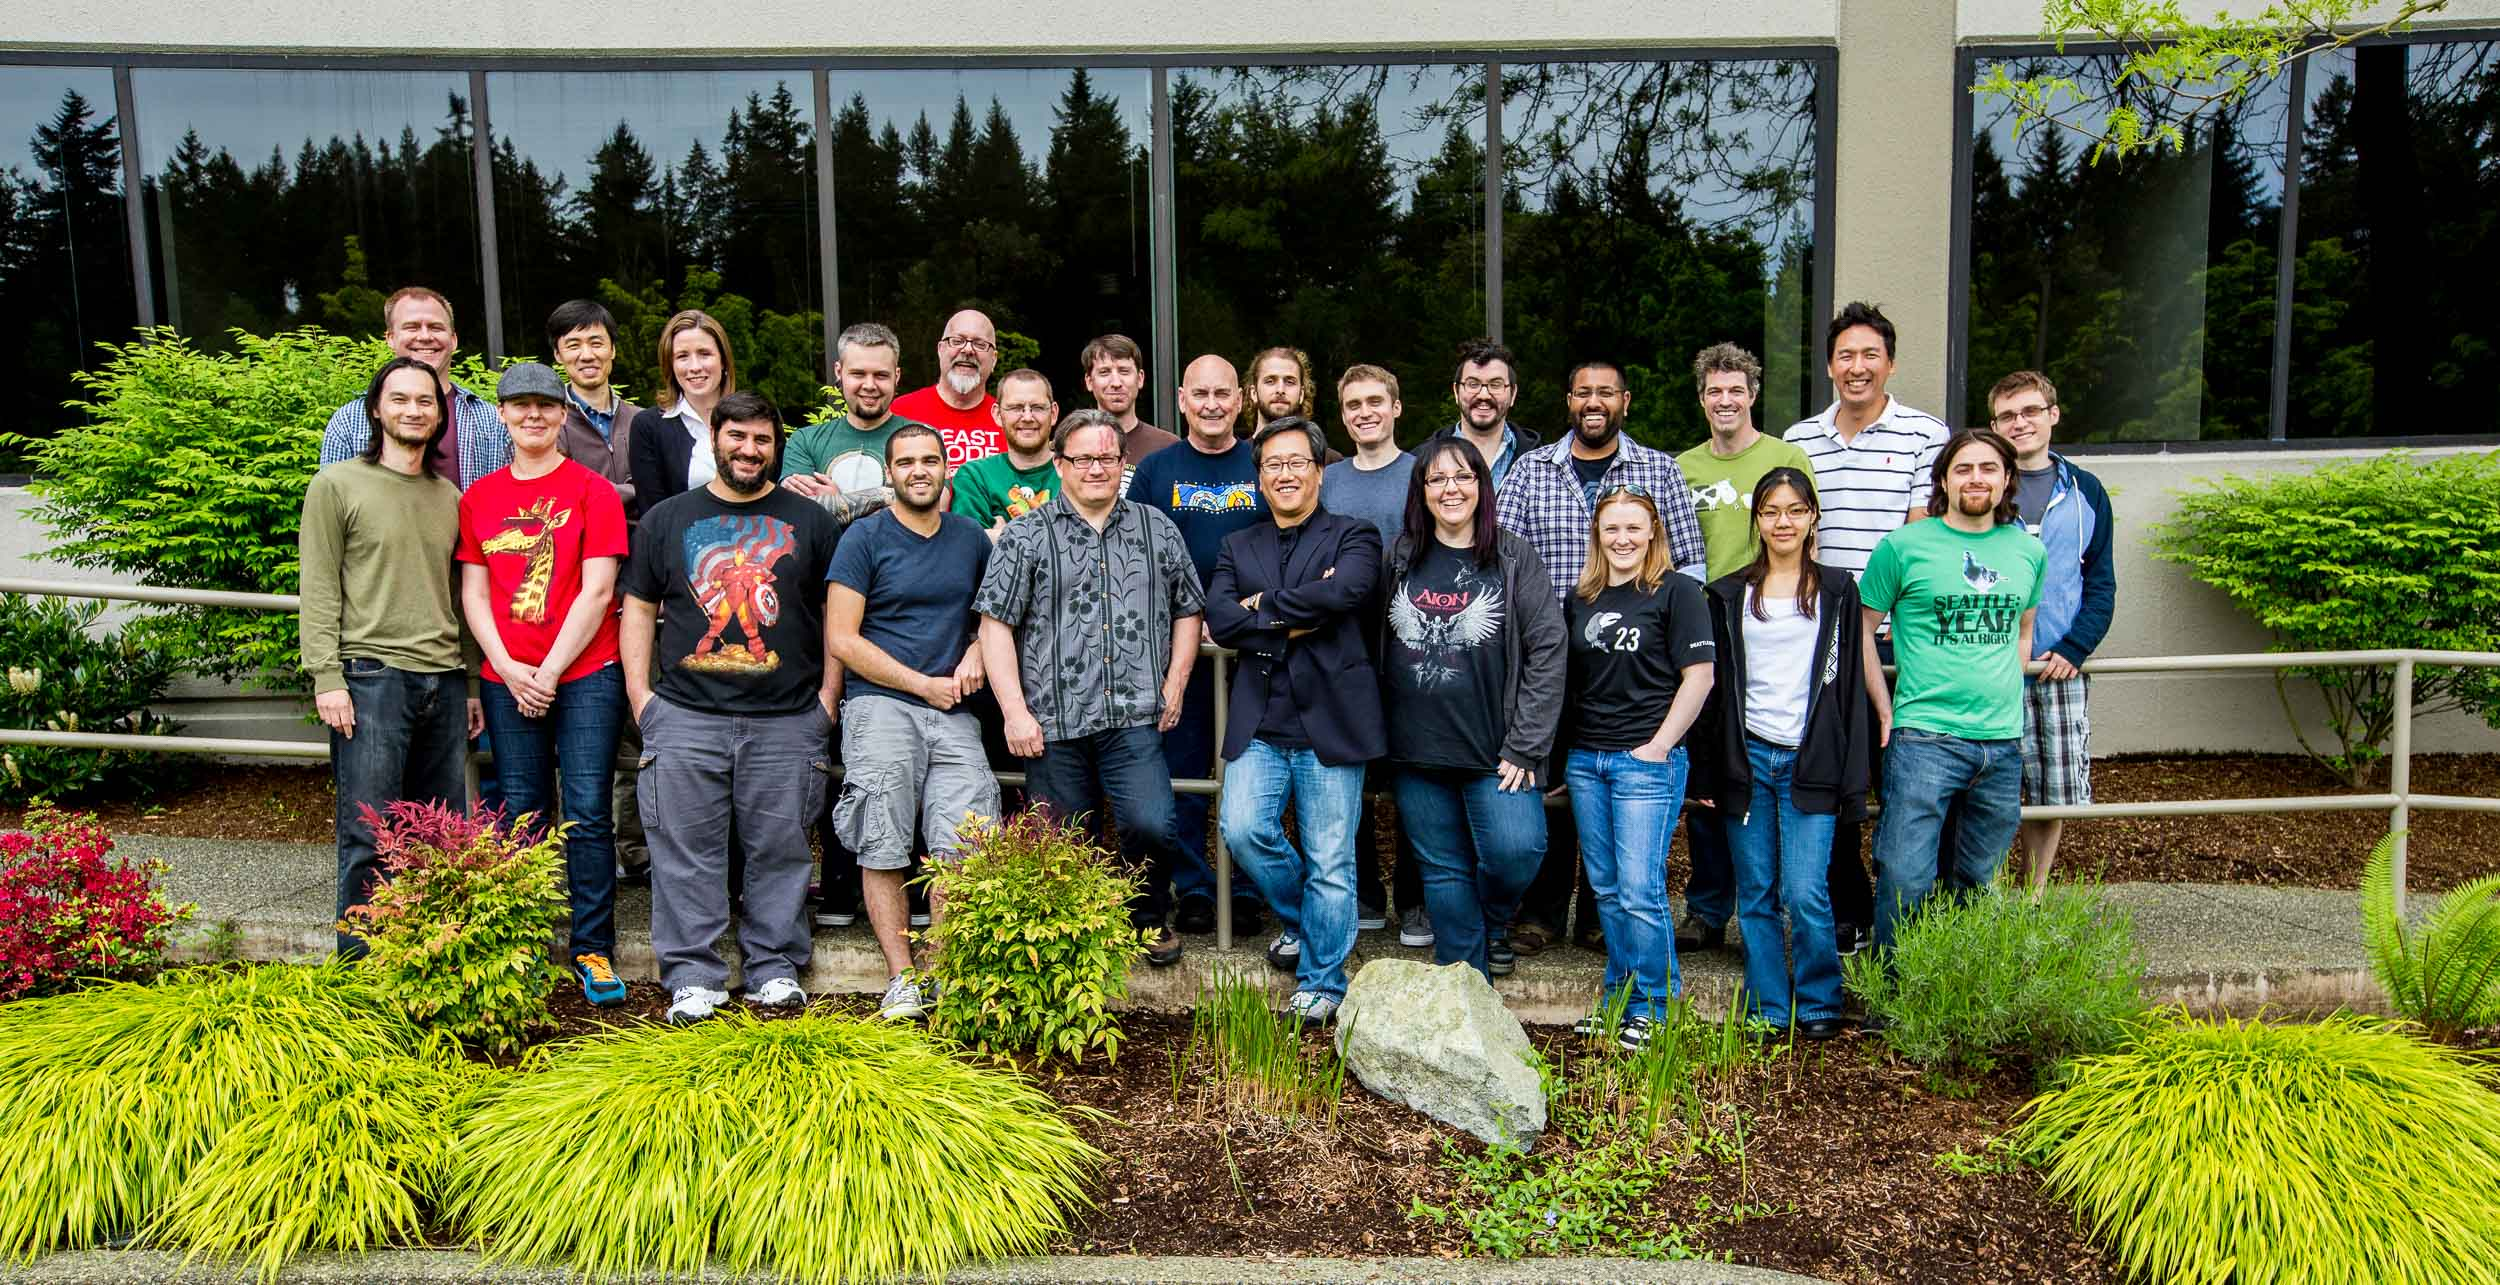 Team Portrait series of a Seattle Game Studio : Bellevue